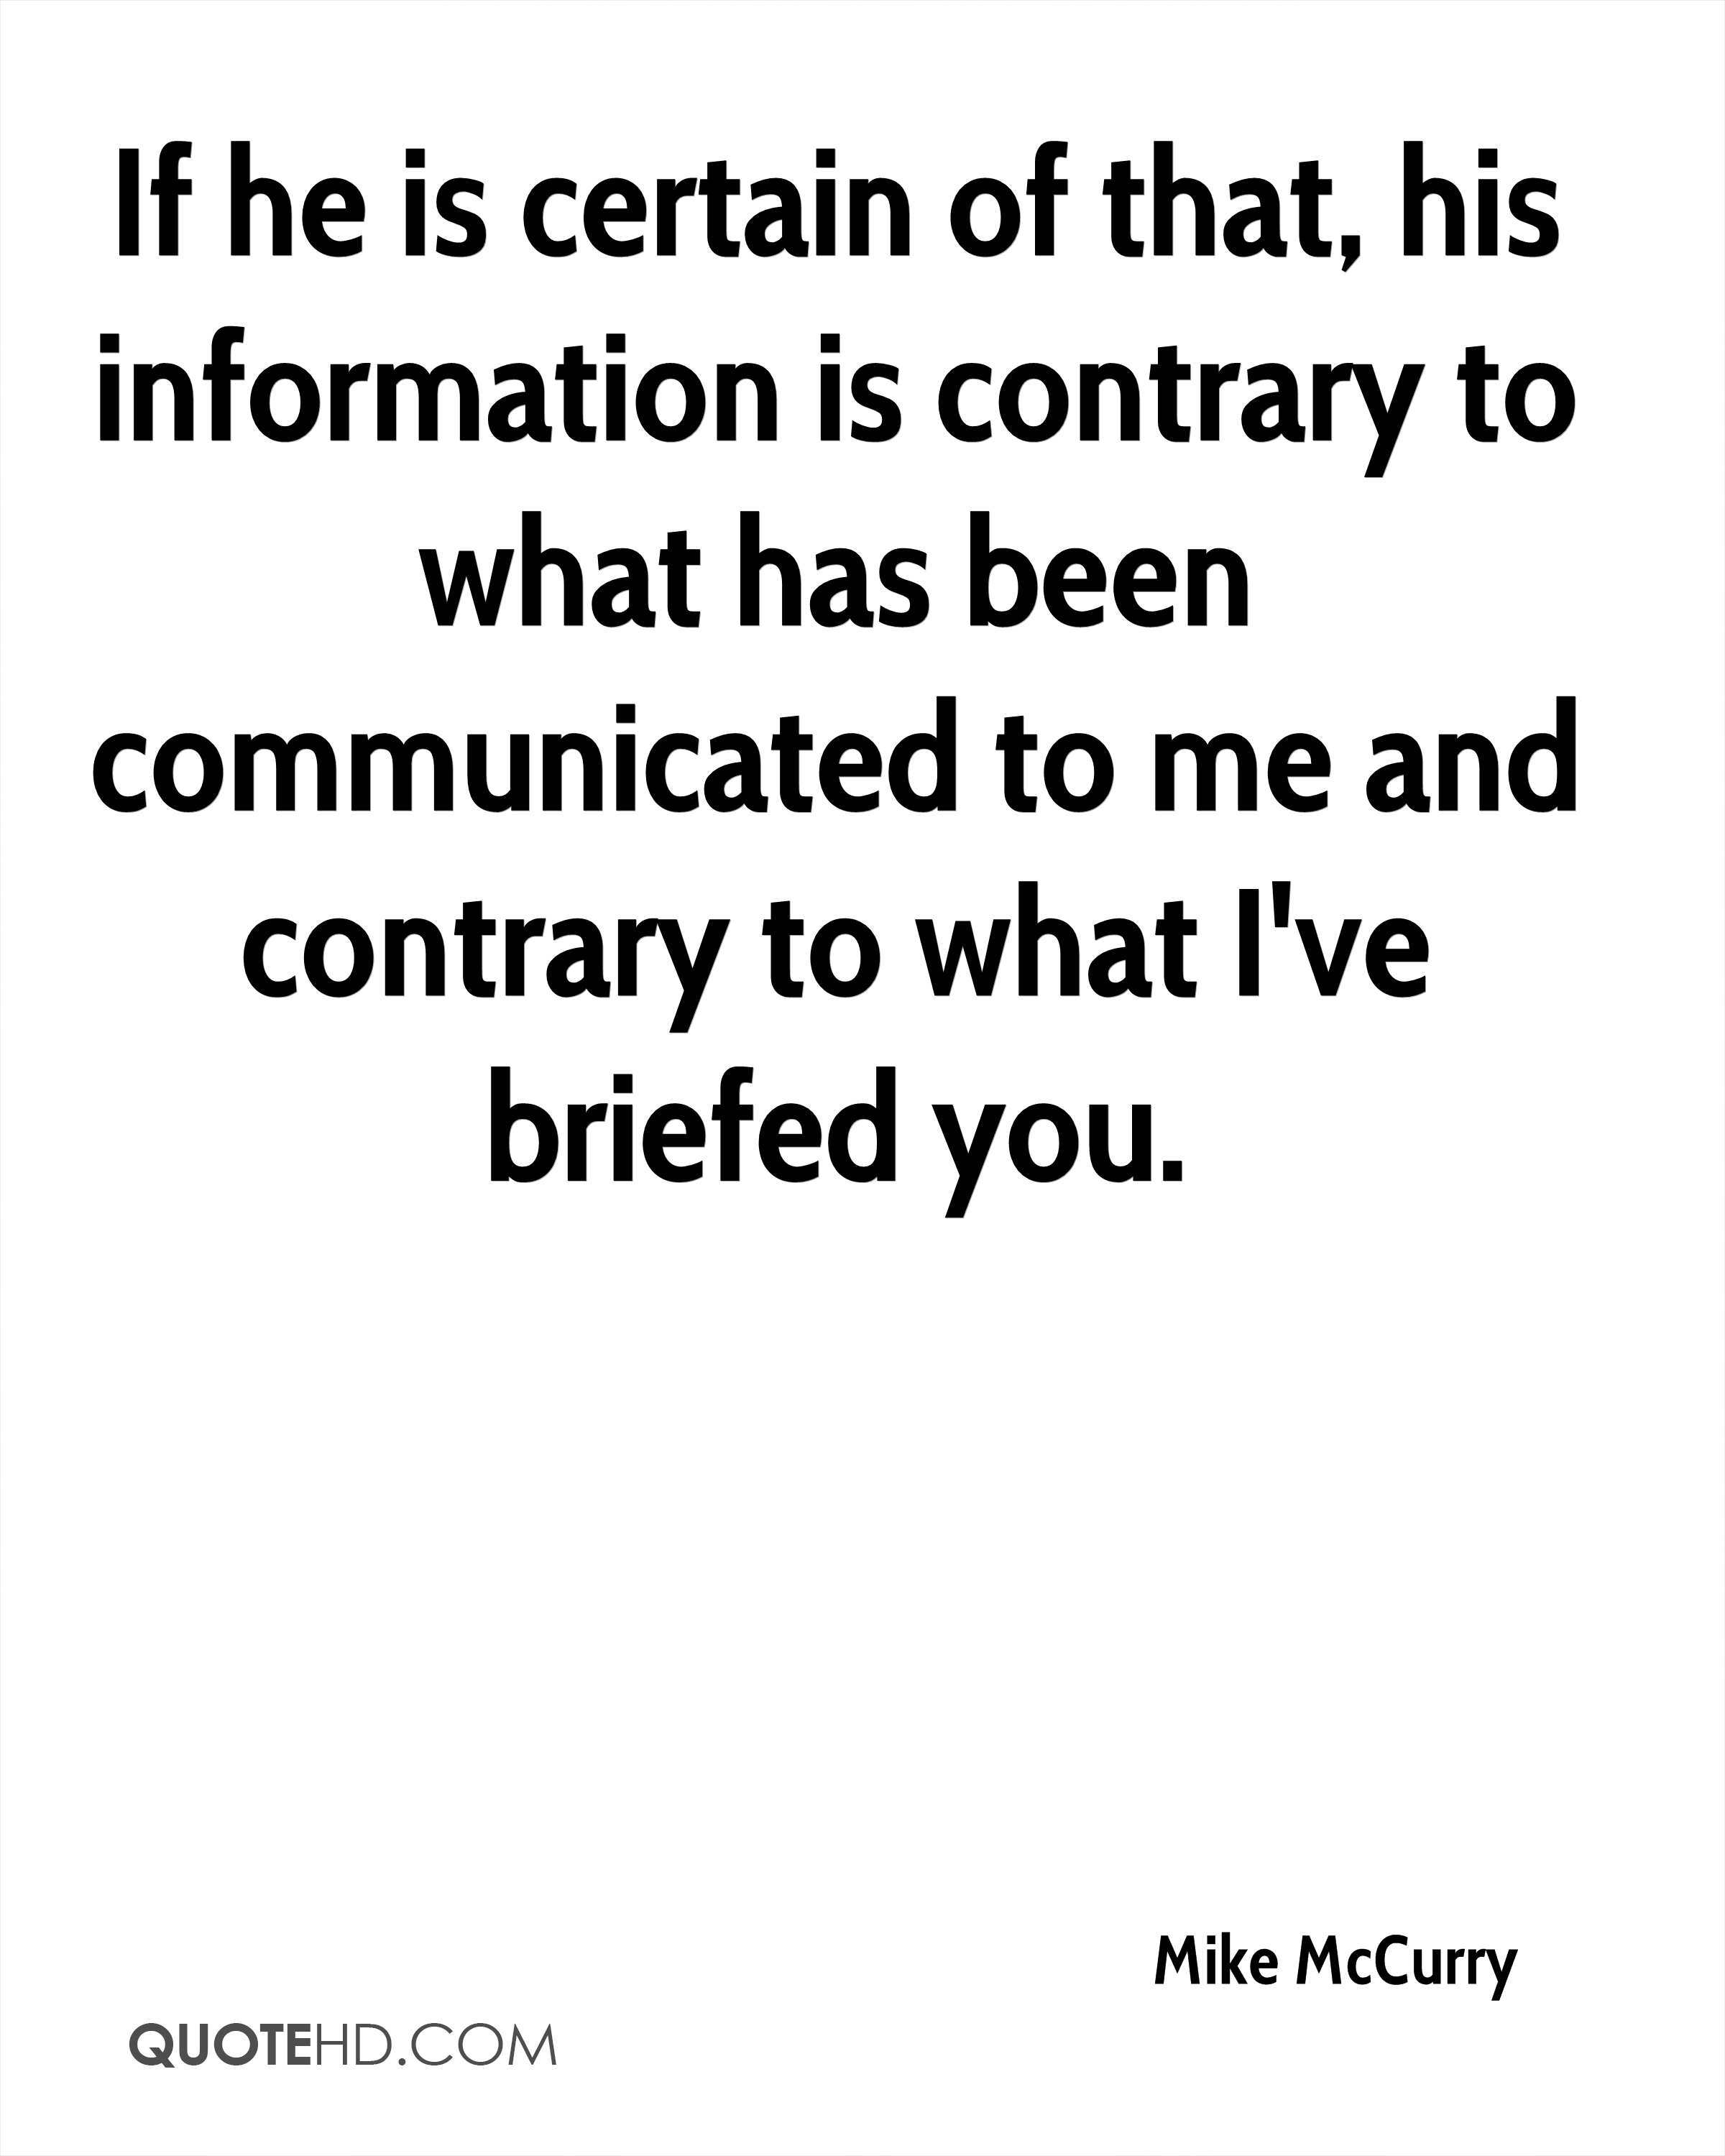 If he is certain of that, his information is contrary to what has been communicated to me and contrary to what I've briefed you.